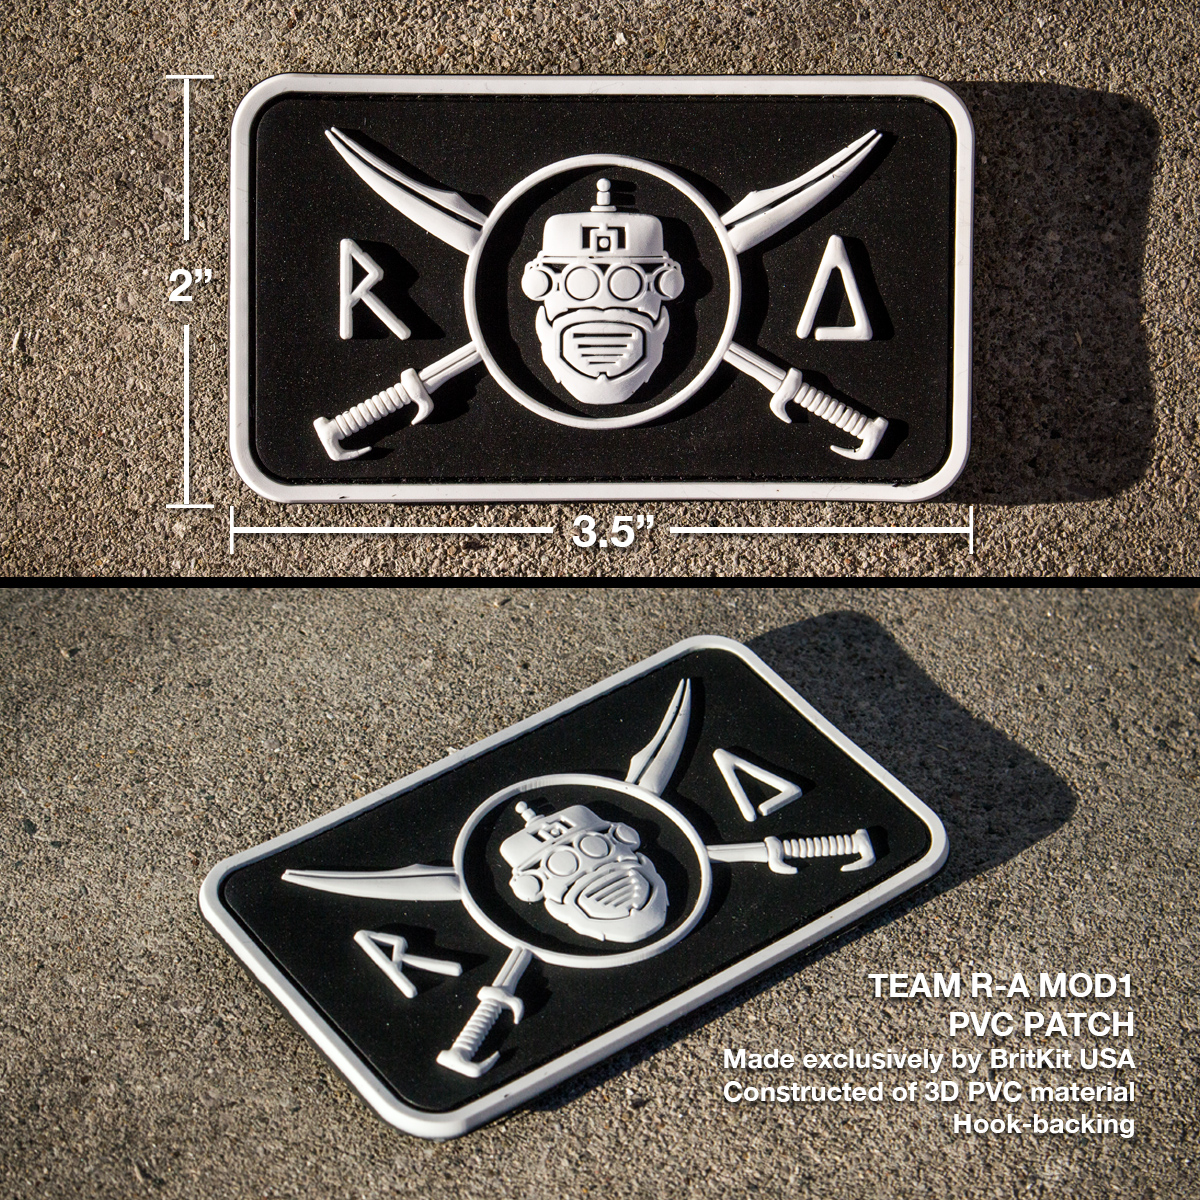 "Team R-A MOD1 PVC Patch  Made exclusively by BritKit USA. Constructed of PVC material with hook backing. White/Black. 3.5"" x 2.0""   $10 USD     STOCK: OUT OF STOCK :("